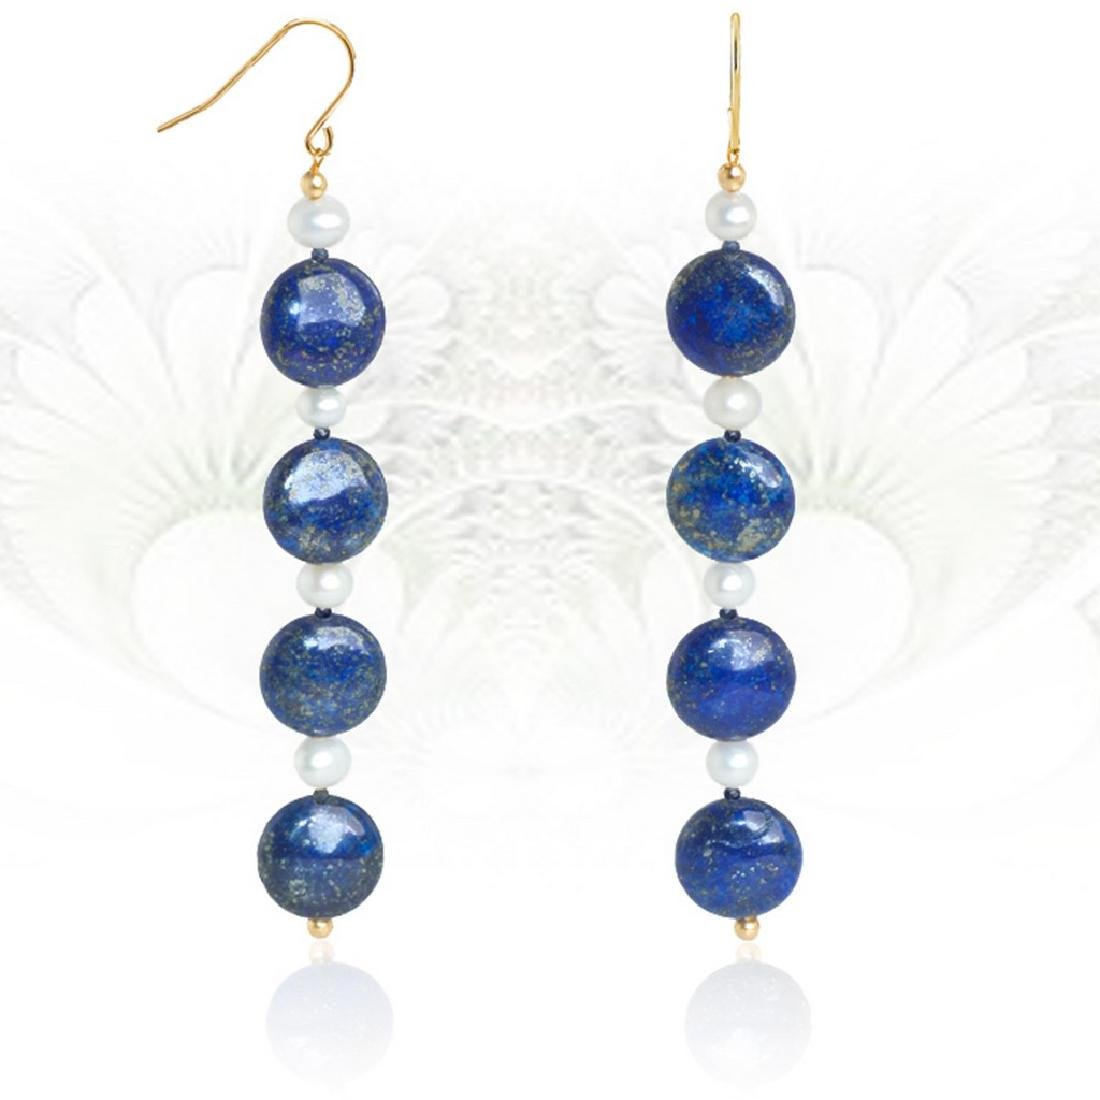 Long 14K Line Earrings with Lapis lazuli, Pearls and